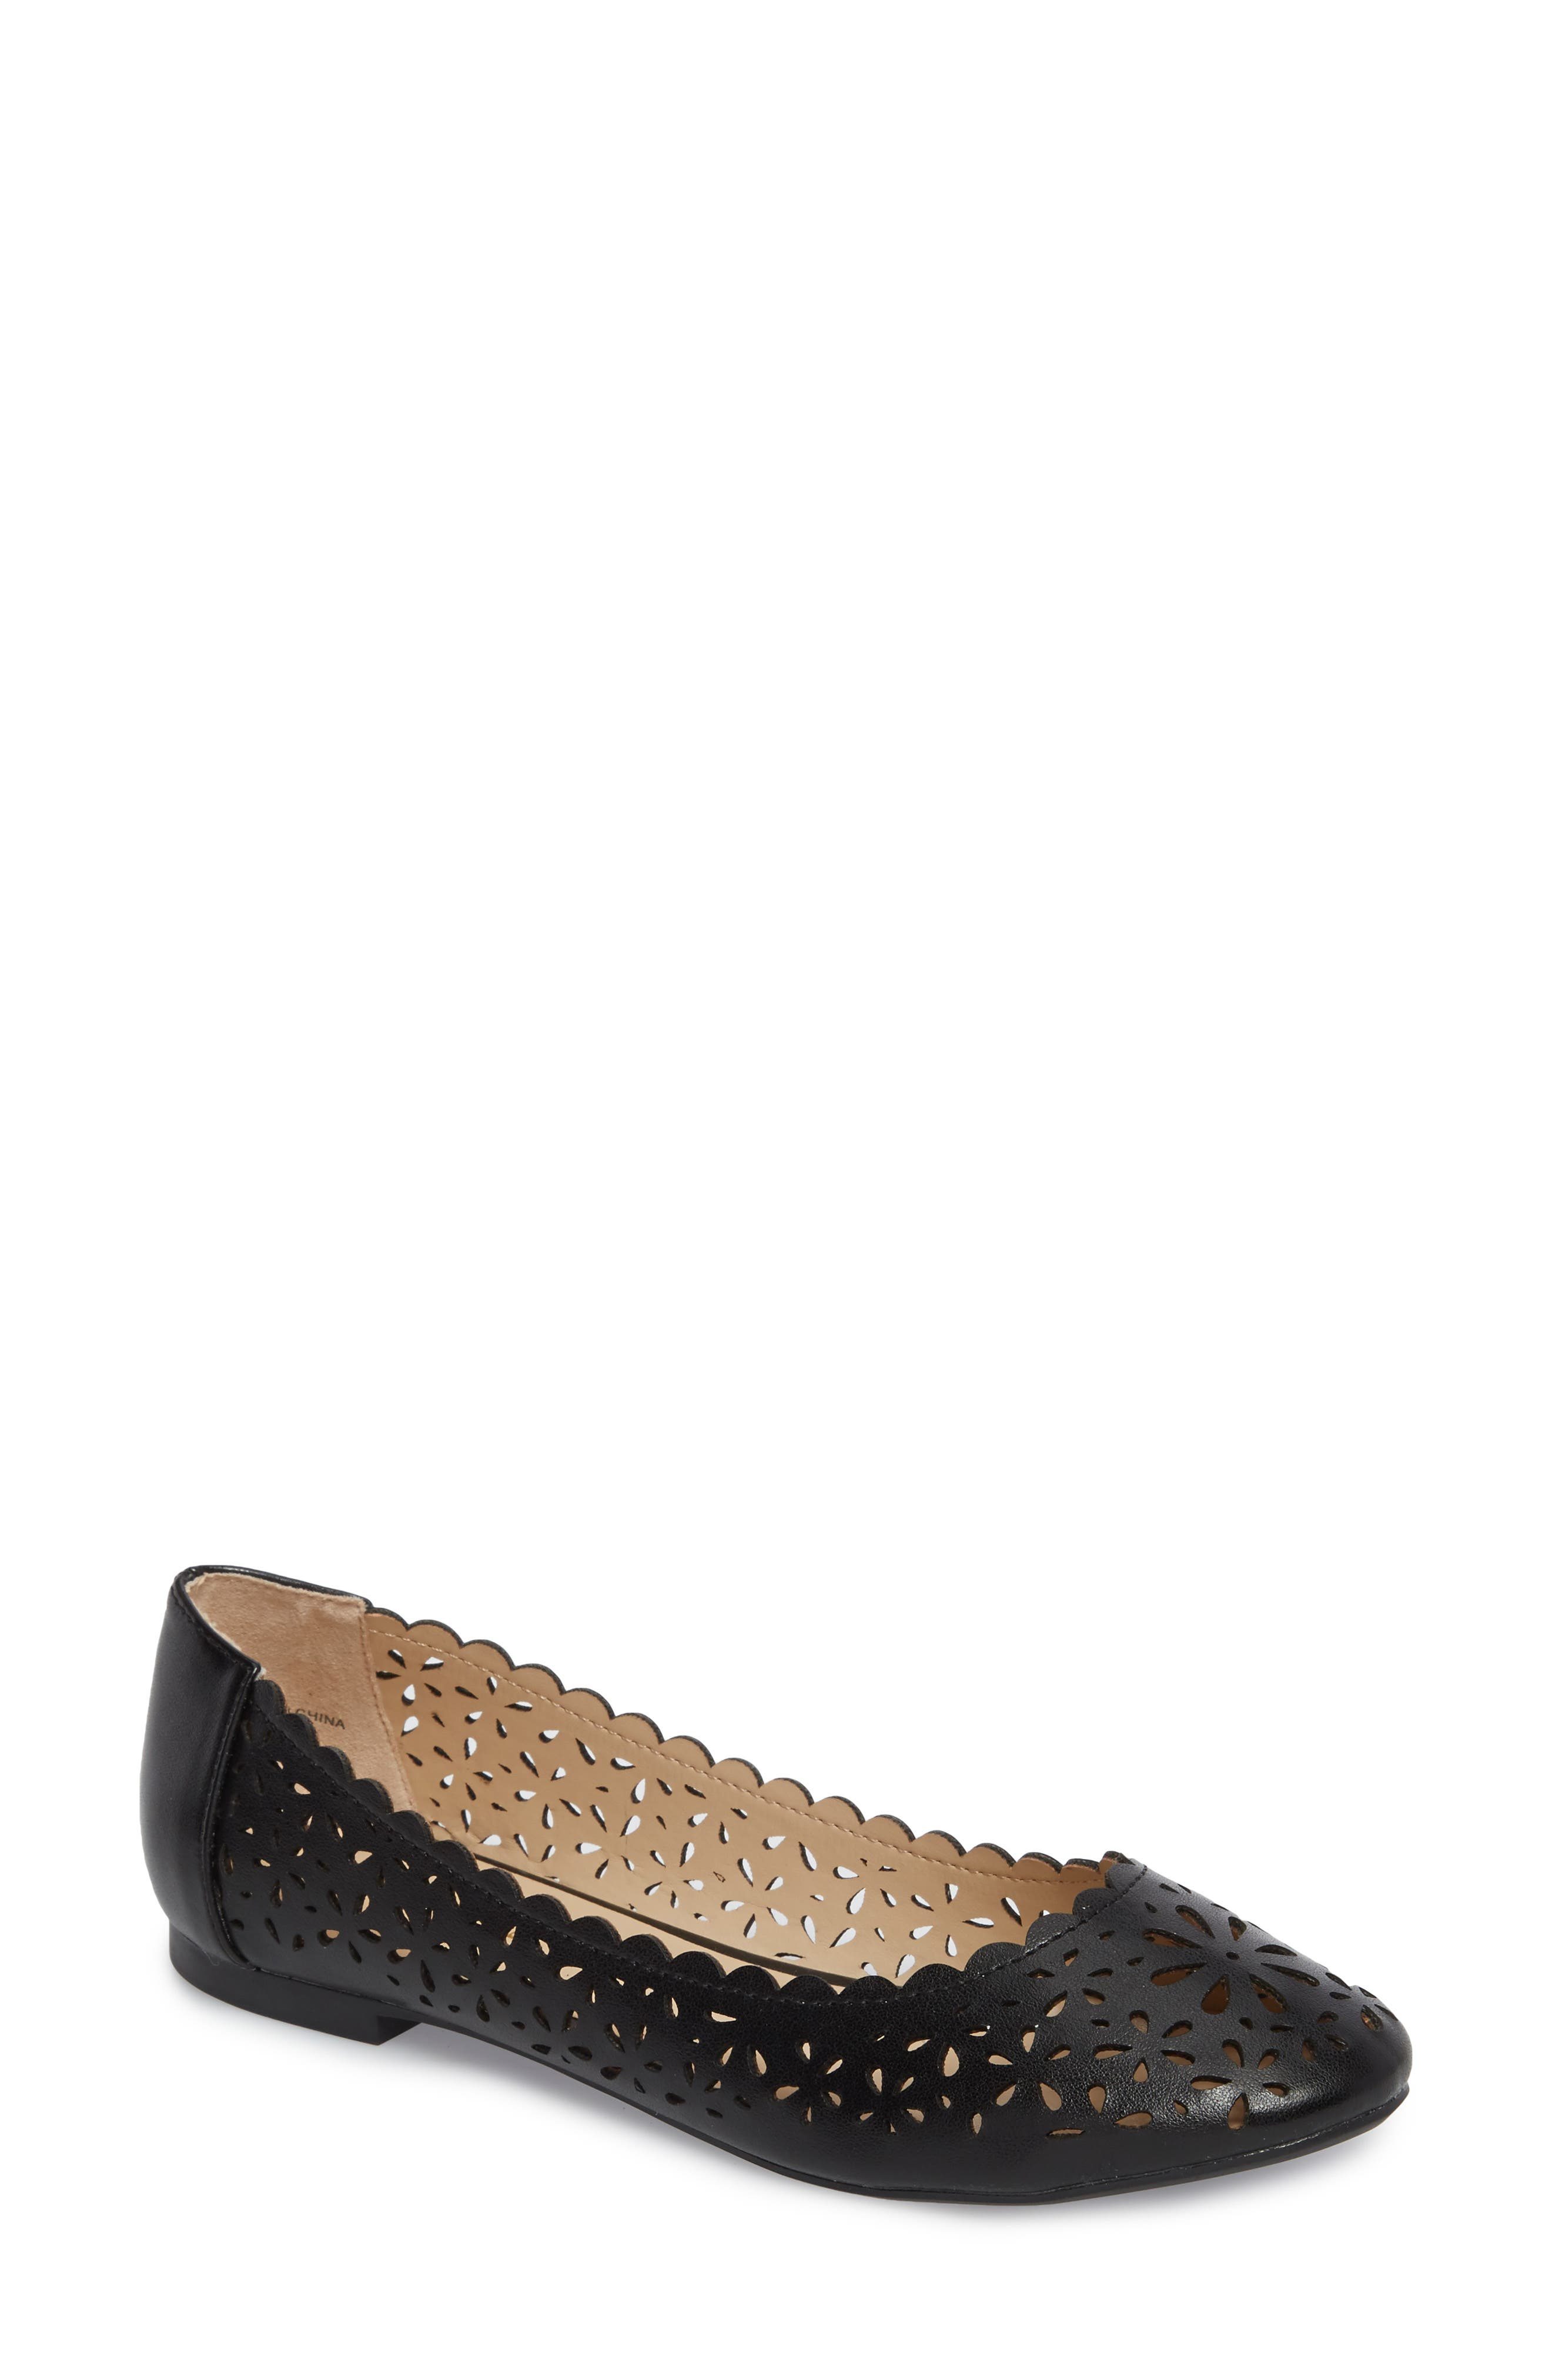 Annora Perforated Flat,                         Main,                         color, 001